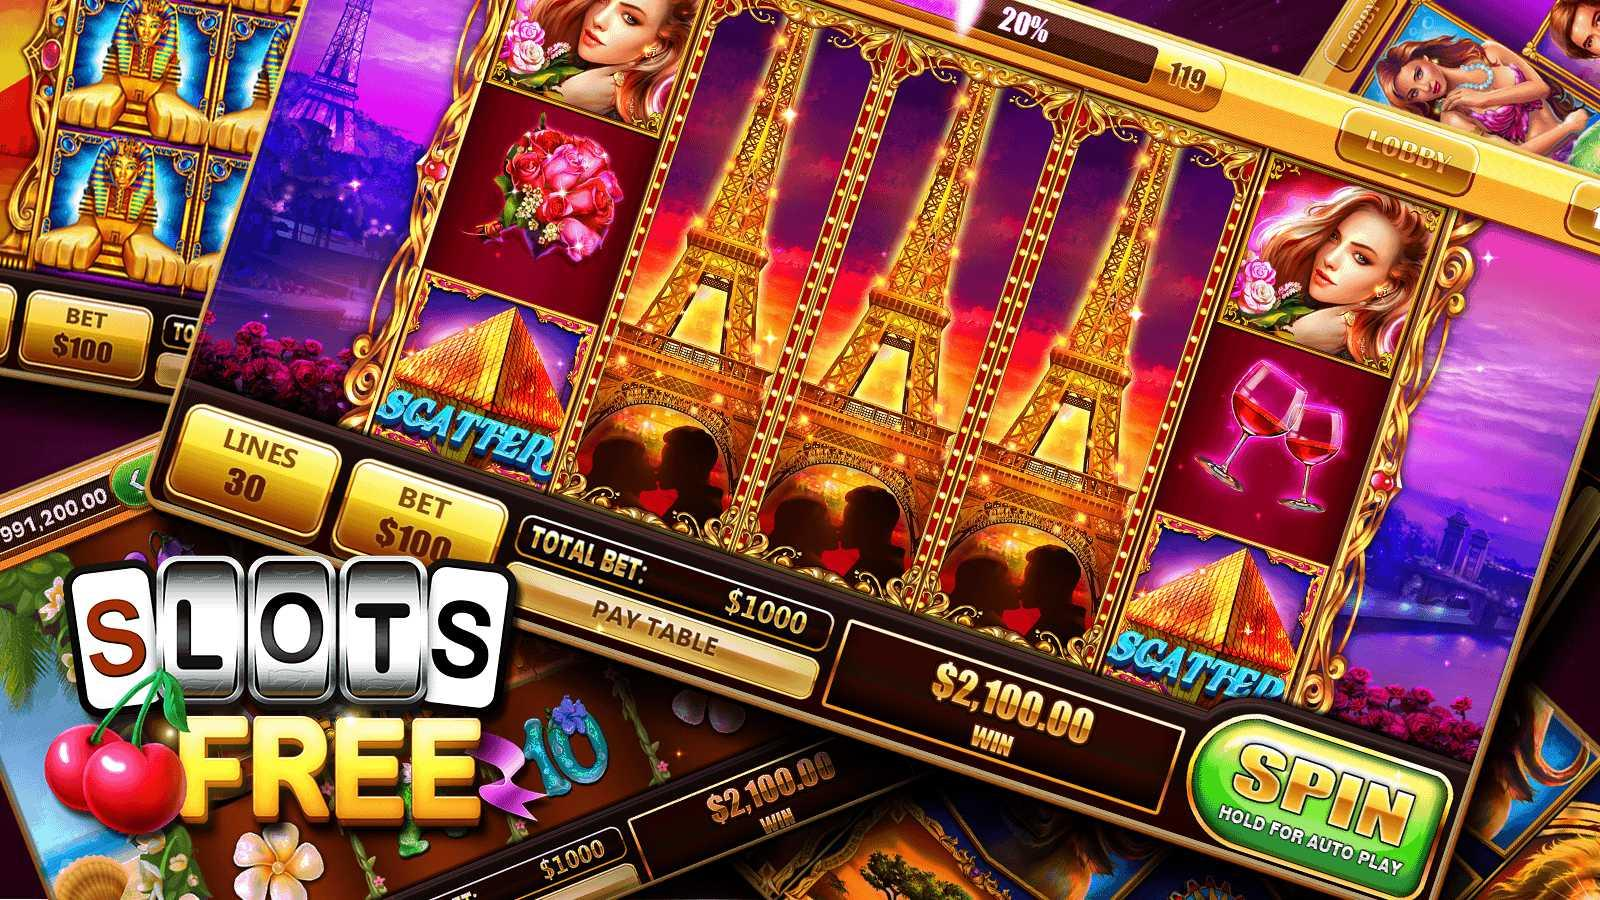 Wild Jane Slot - Play the Free Casino Game Online